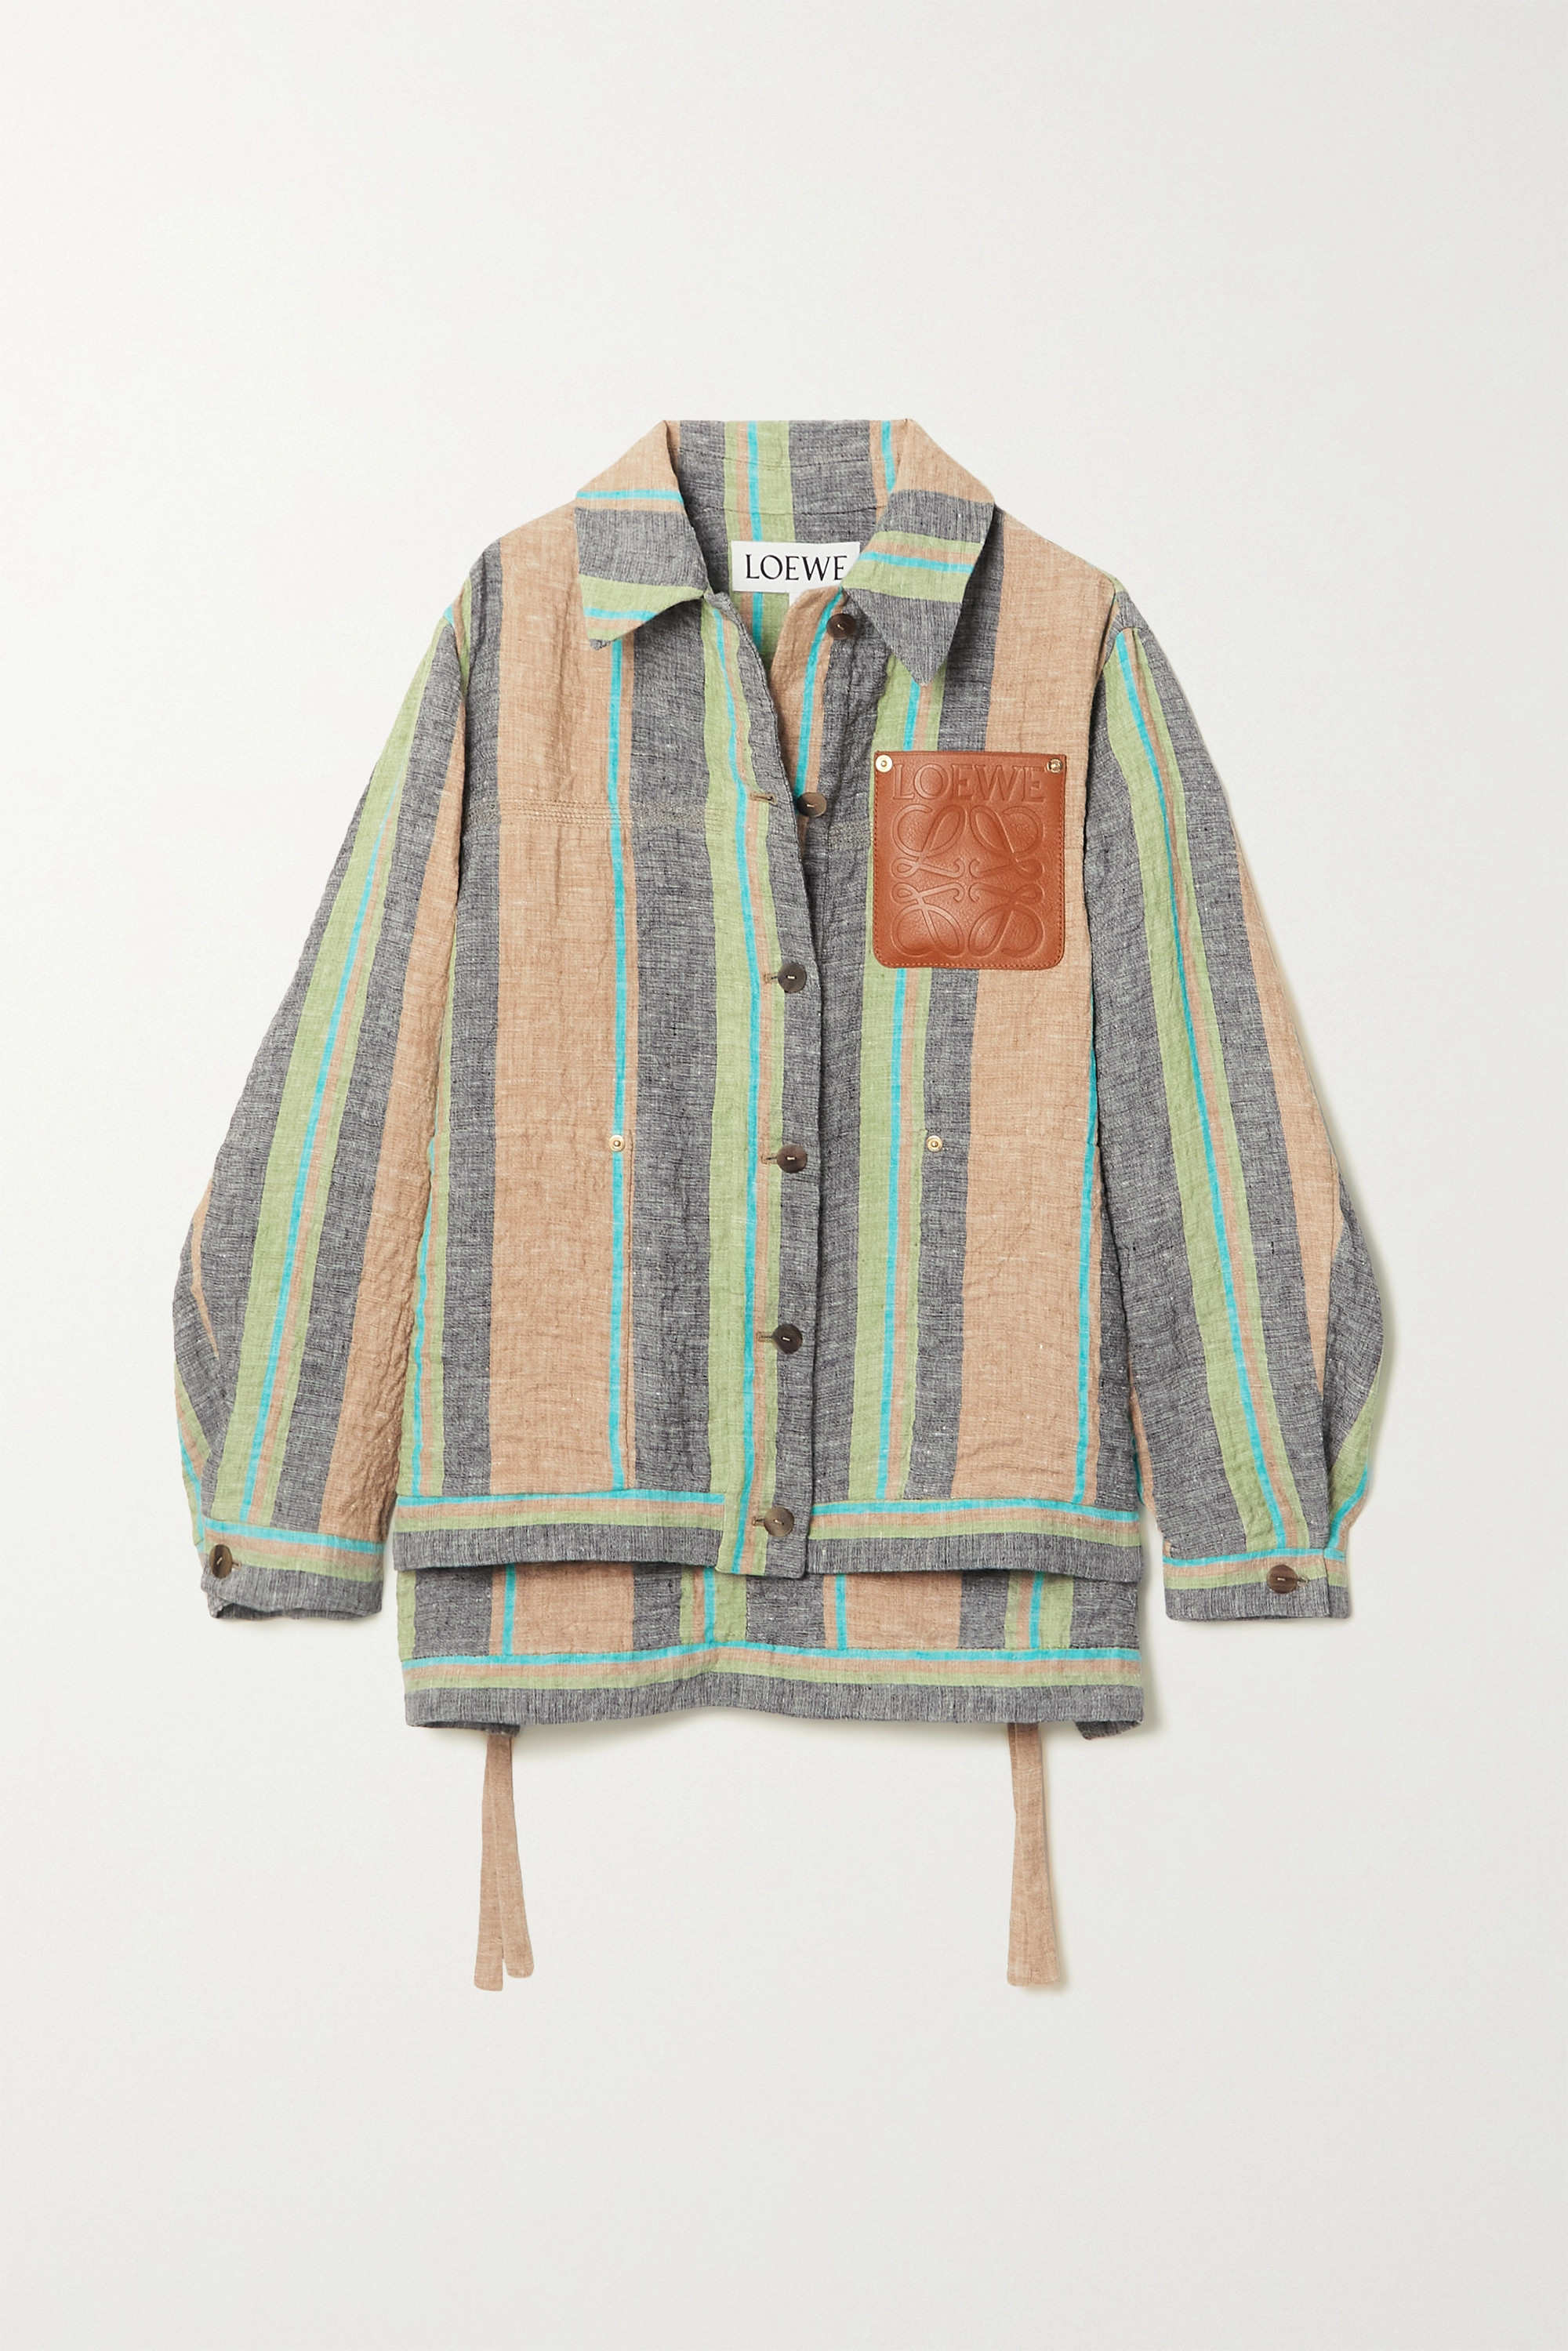 Loewe Leather-trimmed striped linen and cotton-blend jacket